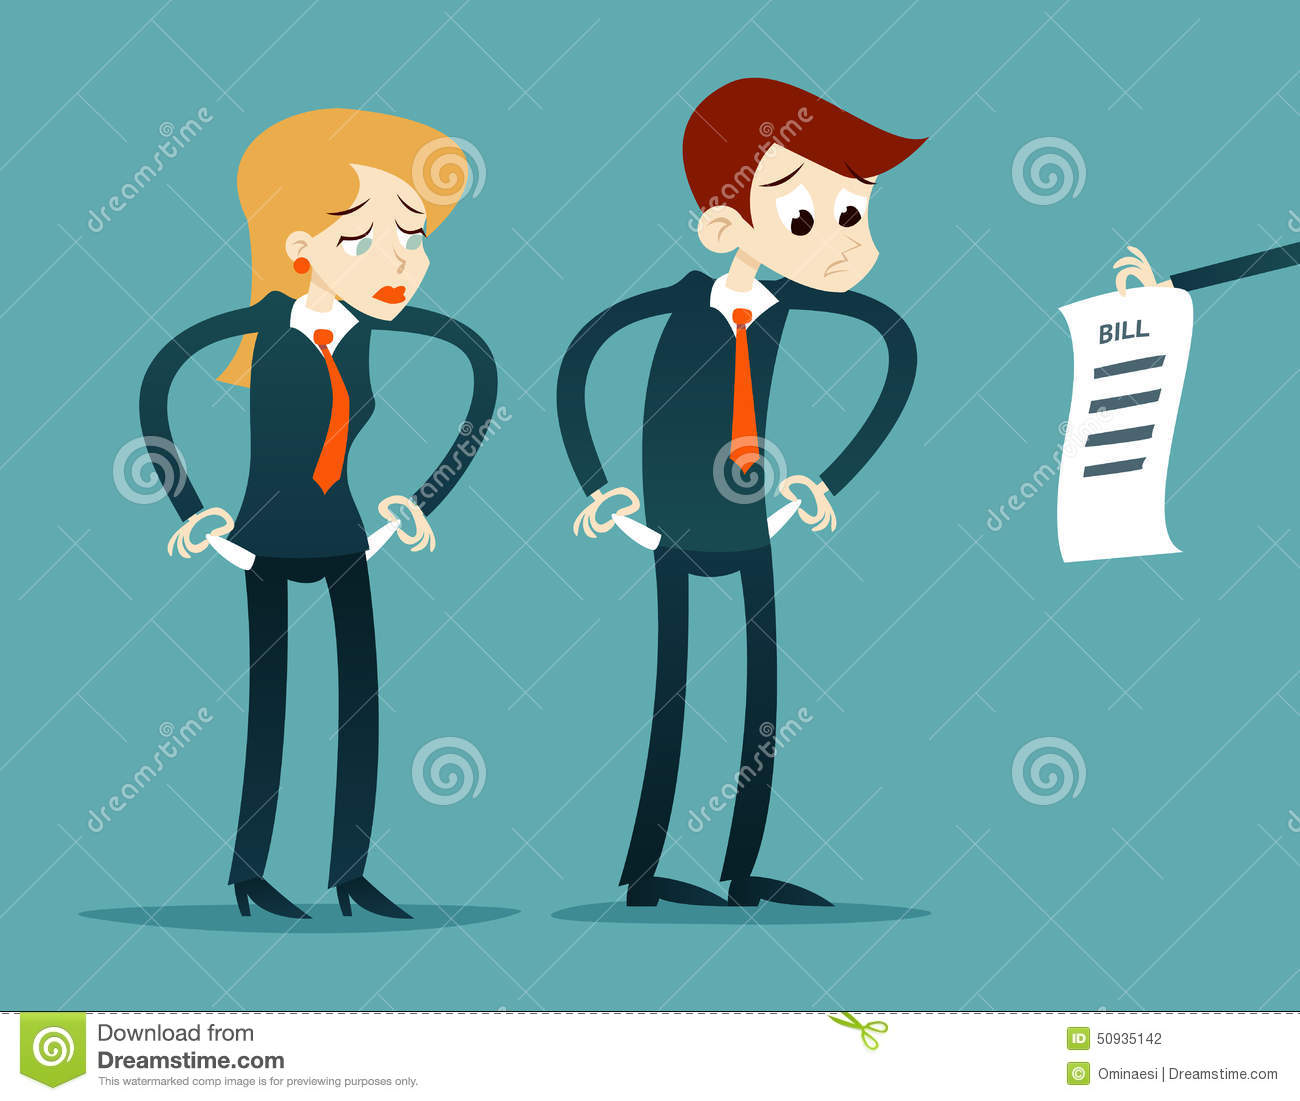 Cartoon Character Design Vector : Out of money businessman cartoon character looking stock